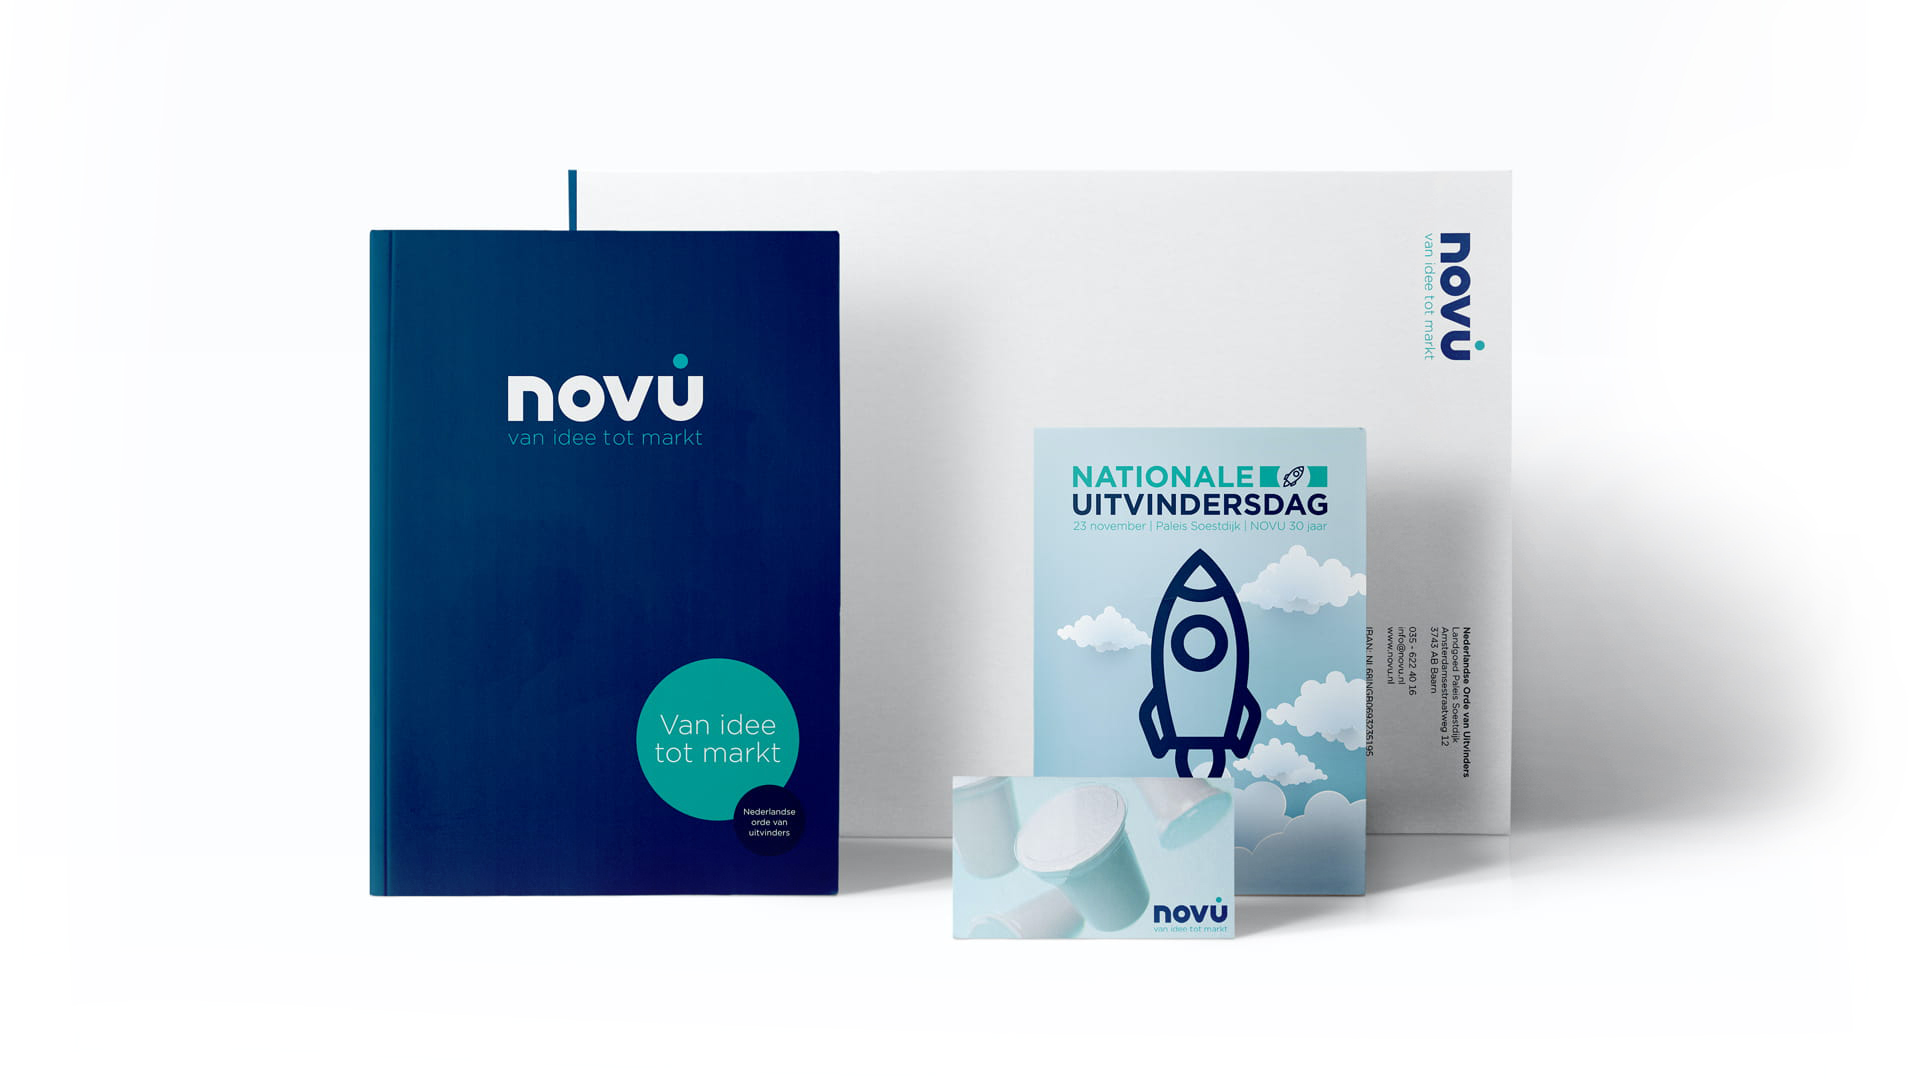 Novu items